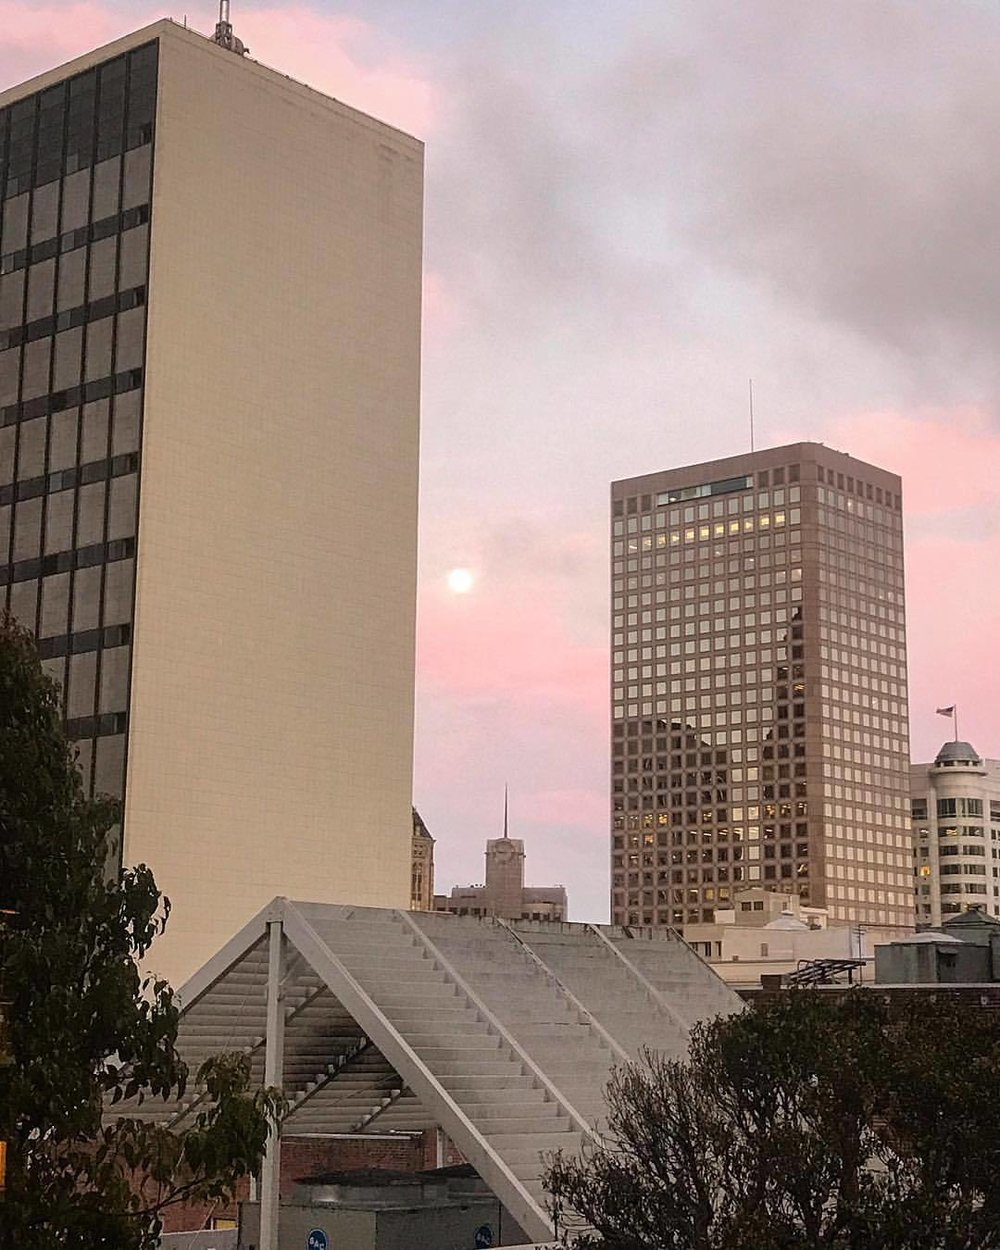 Moon rising behind sunset's fade.  -  #california #strawberrymoon #skygazing  (at San Francisco, California)